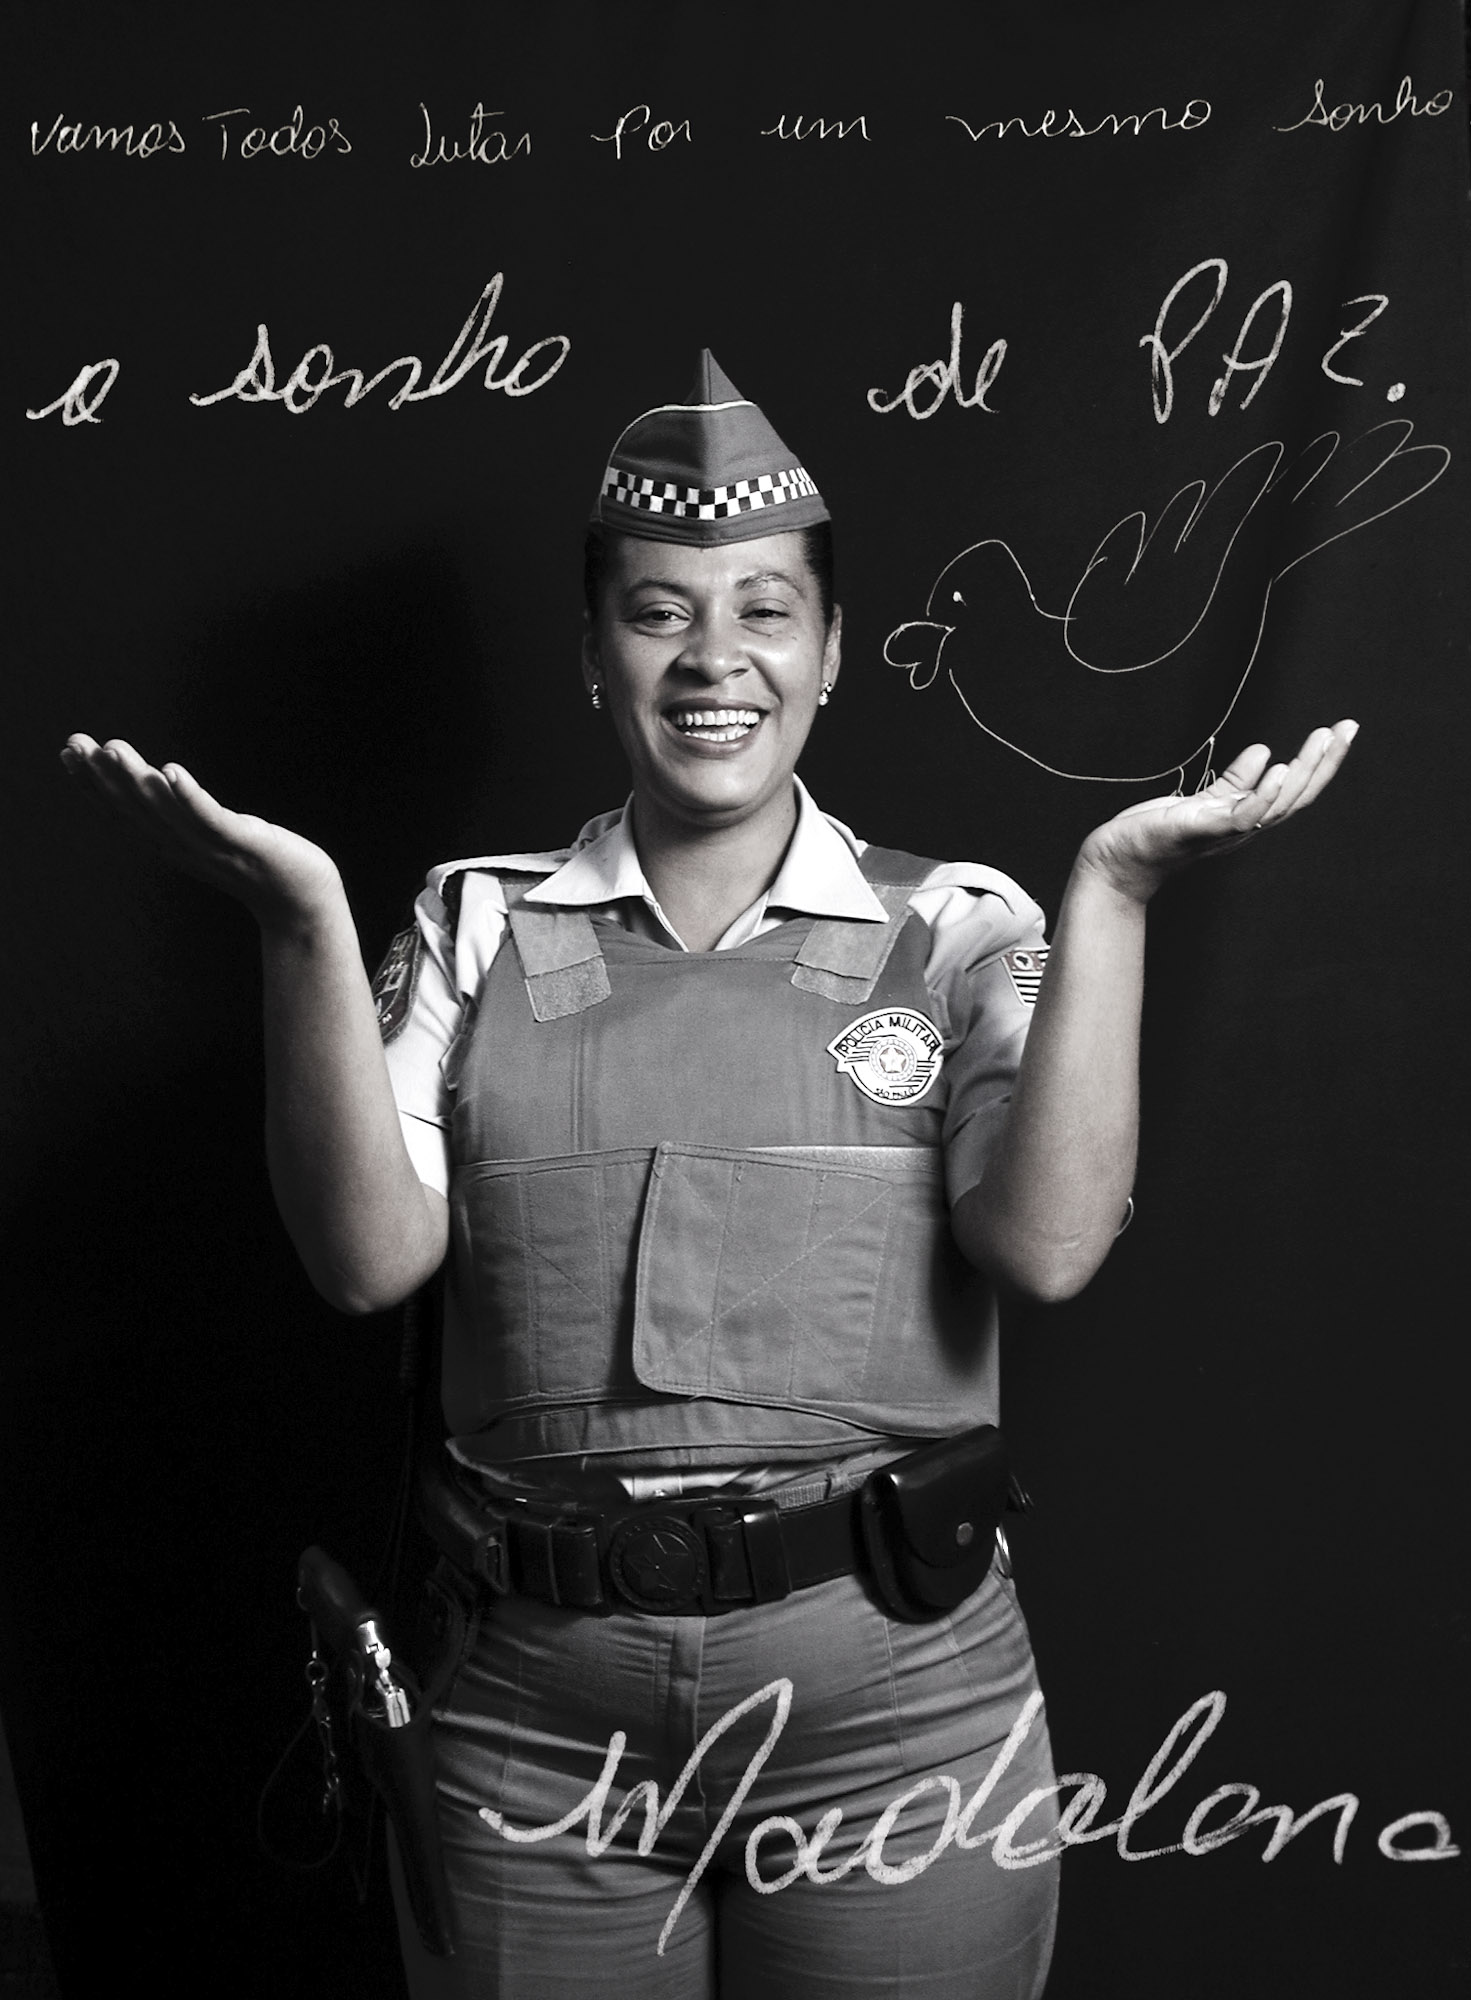 Madalena Dourado de Lima 38 years old, policeman, Praça da República, Sao Paulo, 06/13/2002  Let's all fight for the same dream: the dream of PEACE. Madalena.